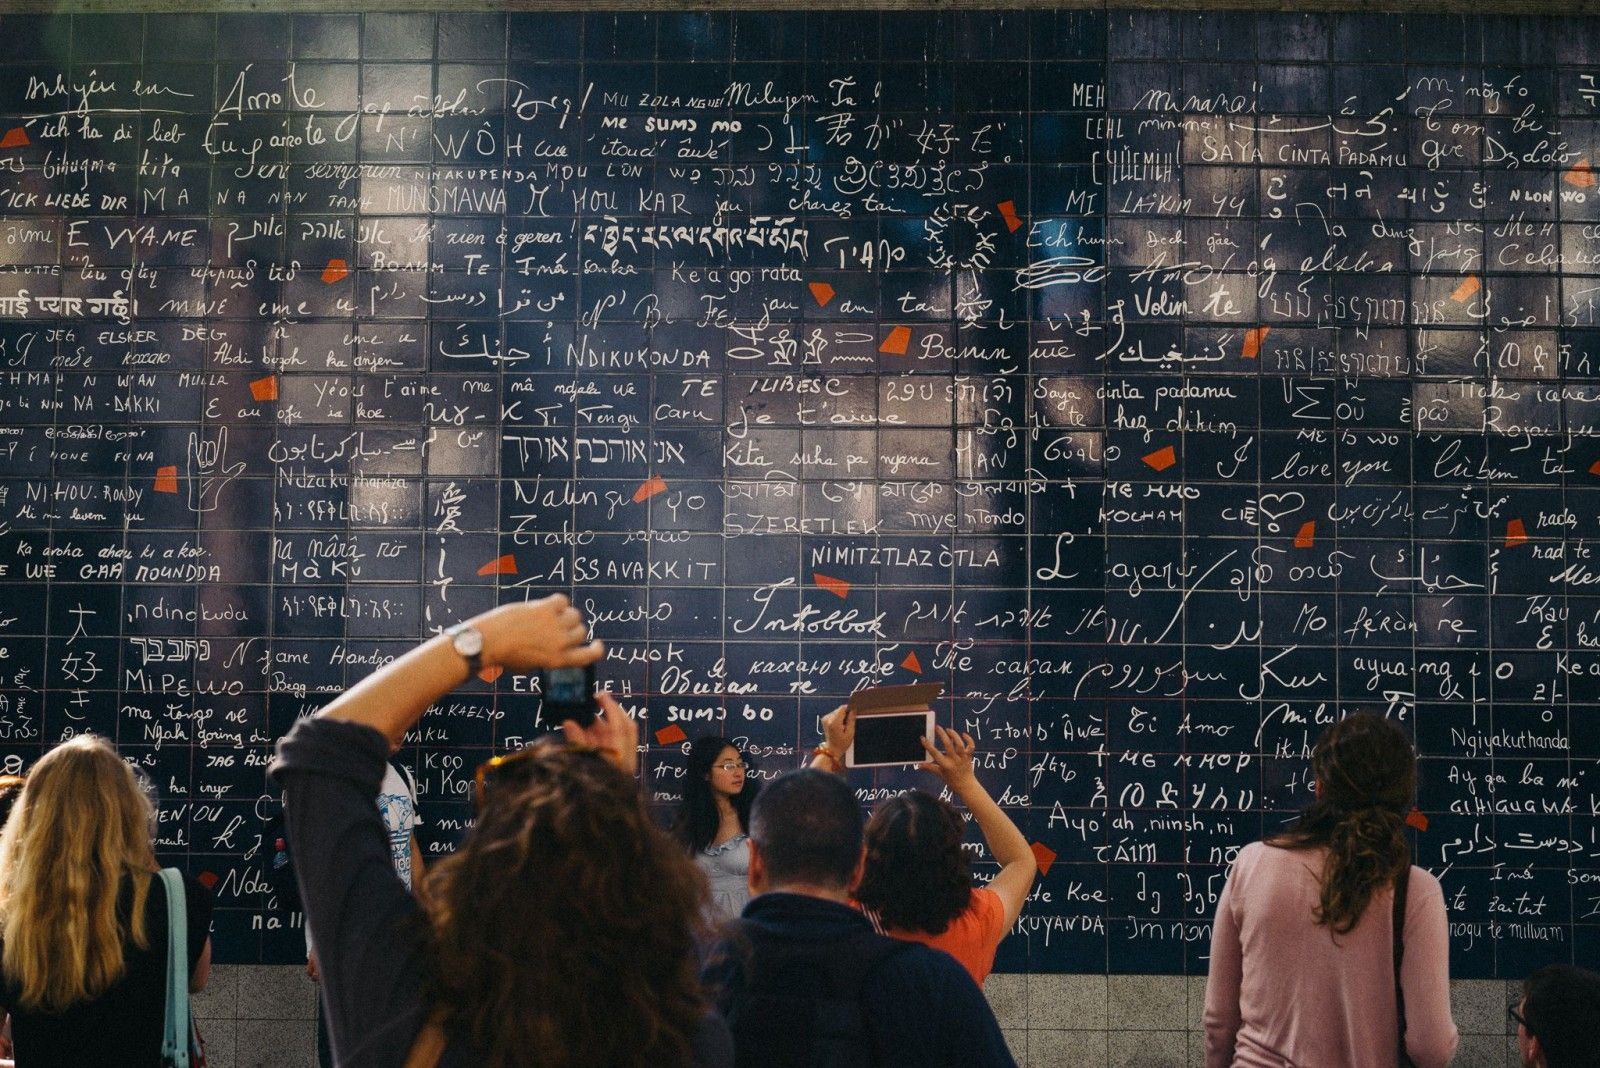 Wall of Love Paris